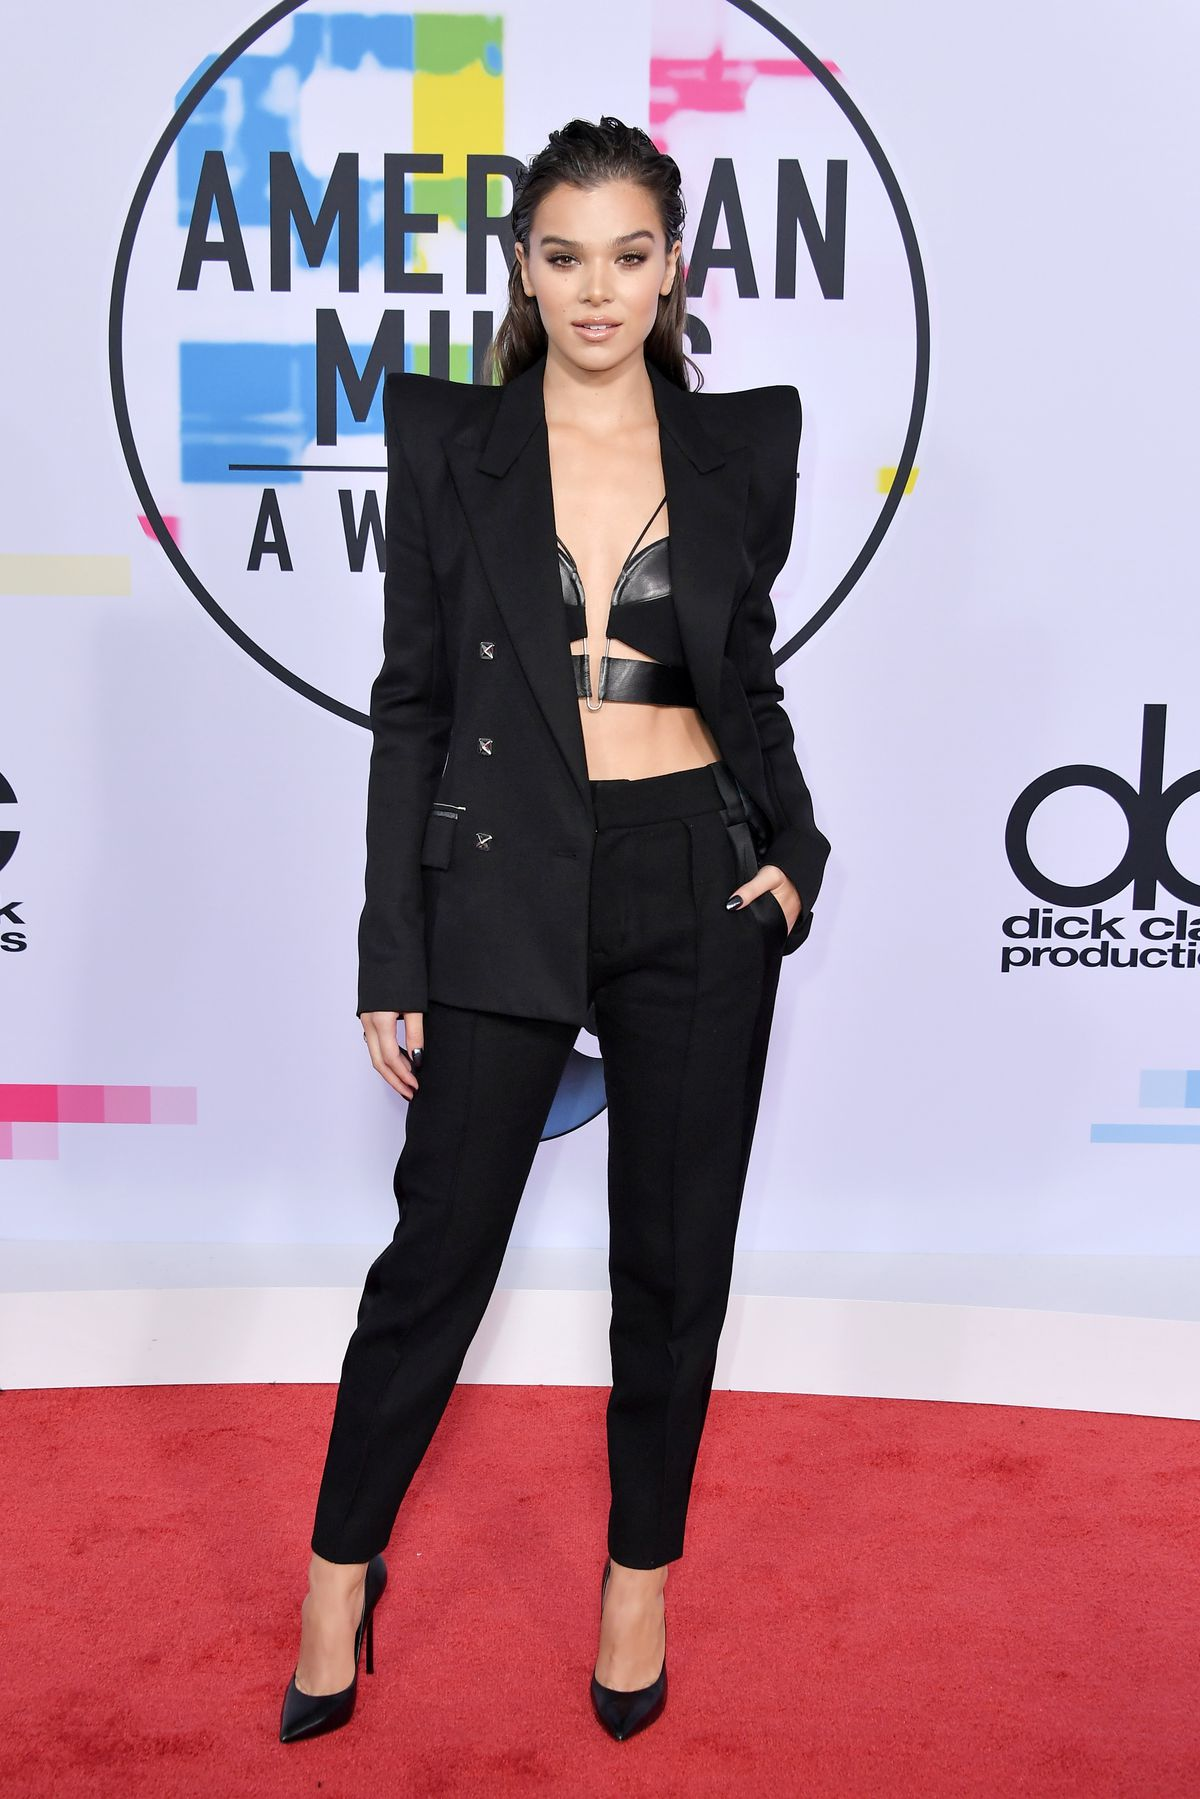 LOS ANGELES, CA - NOVEMBER 19:  Hailee Steinfeld attends the 2017 American Music Awards at Microsoft Theater on November 19, 2017 in Los Angeles, California.